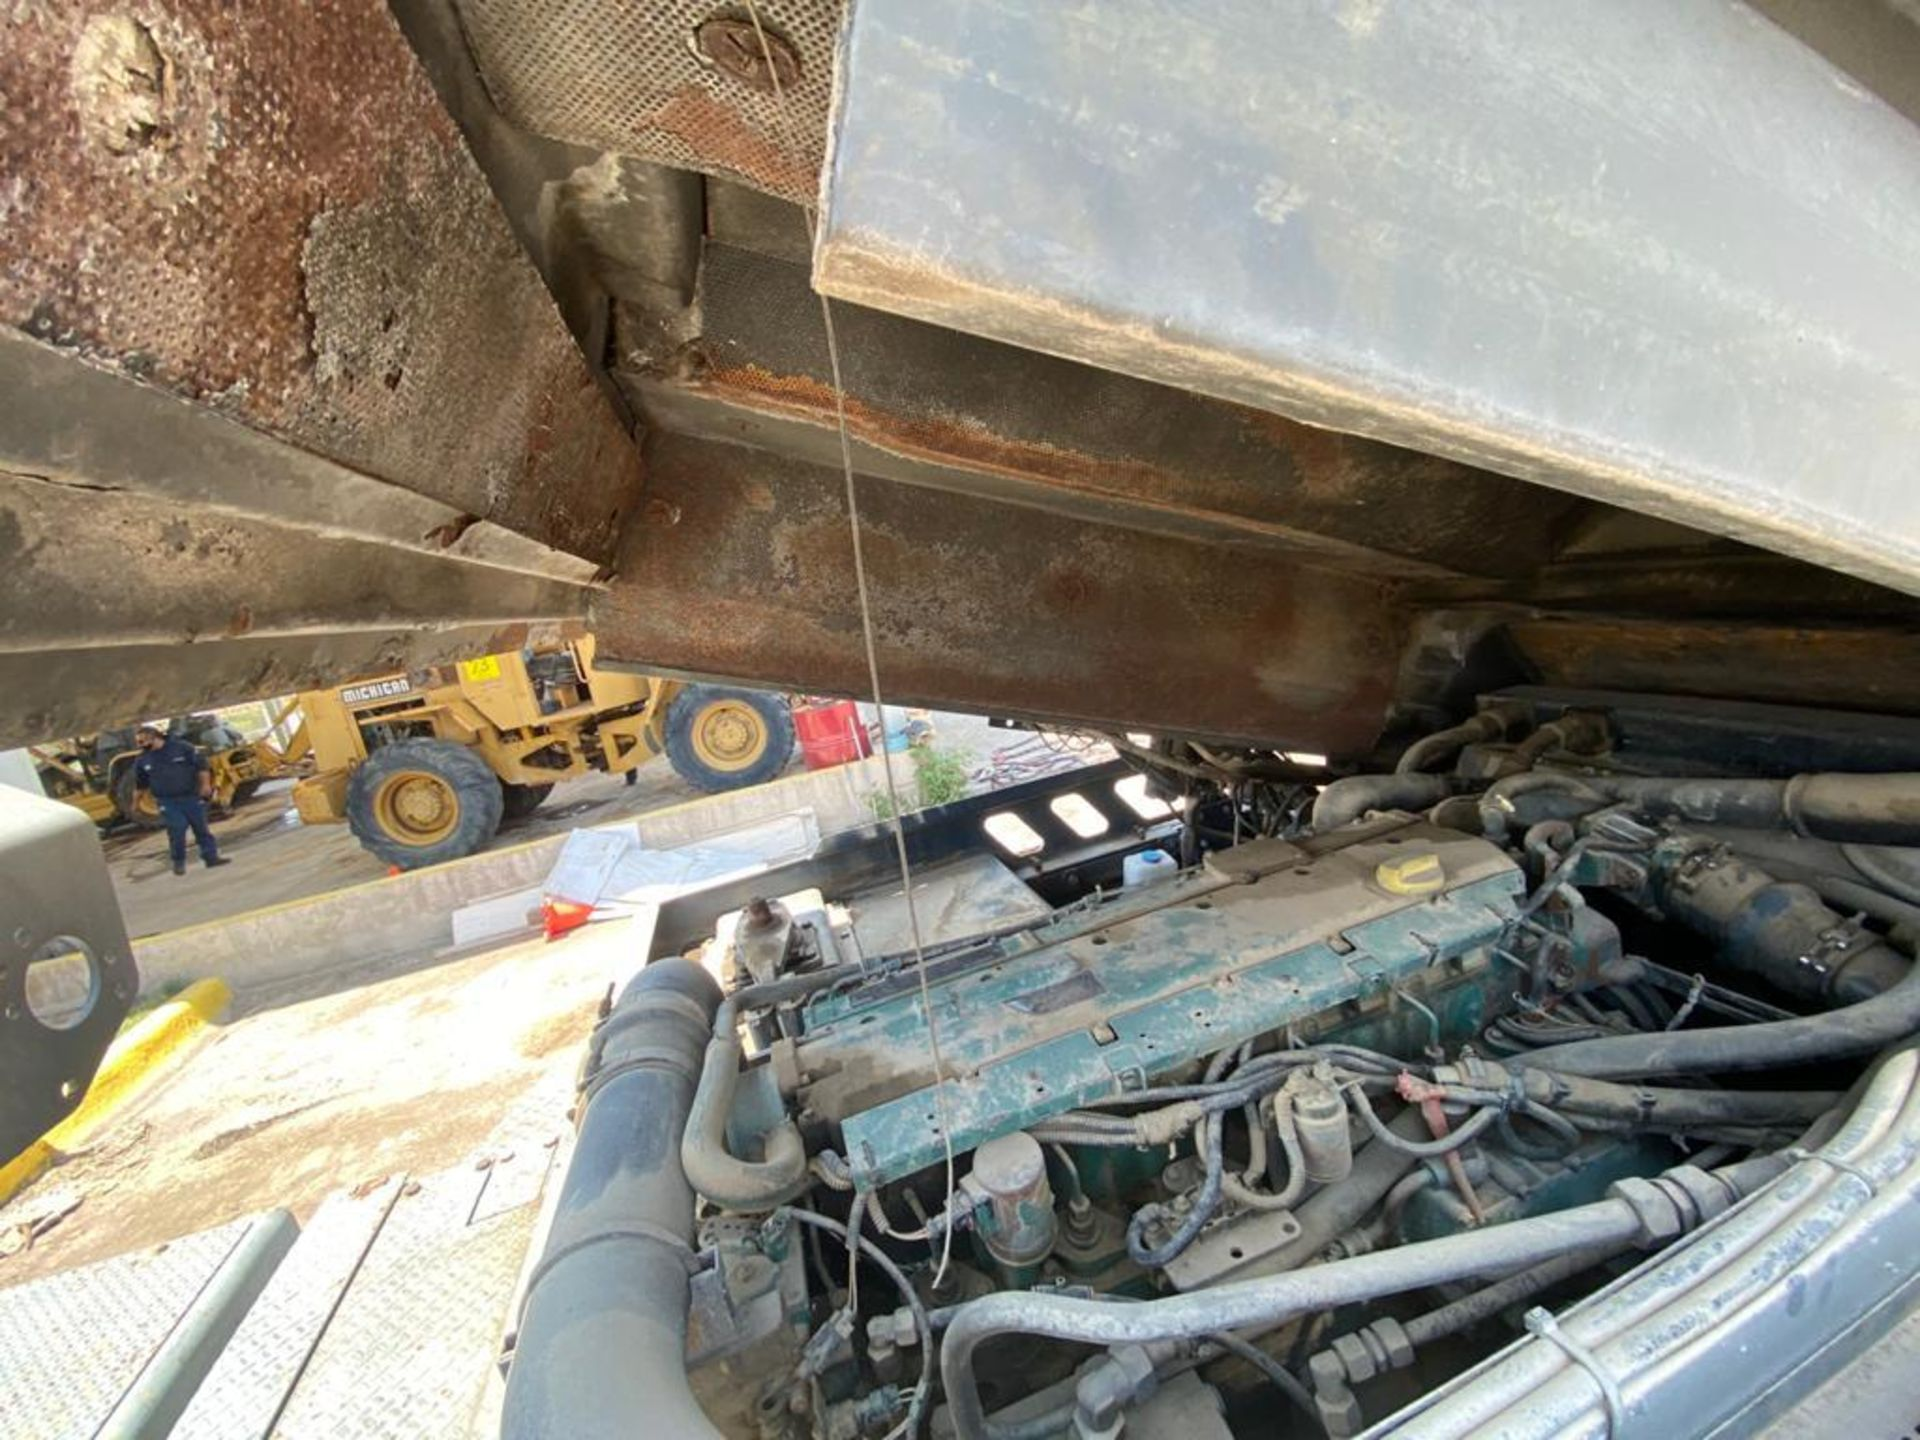 Terberg Capacity 2002 Terminal Tractor, automatic transmission, with Volvo motor - Image 48 of 57